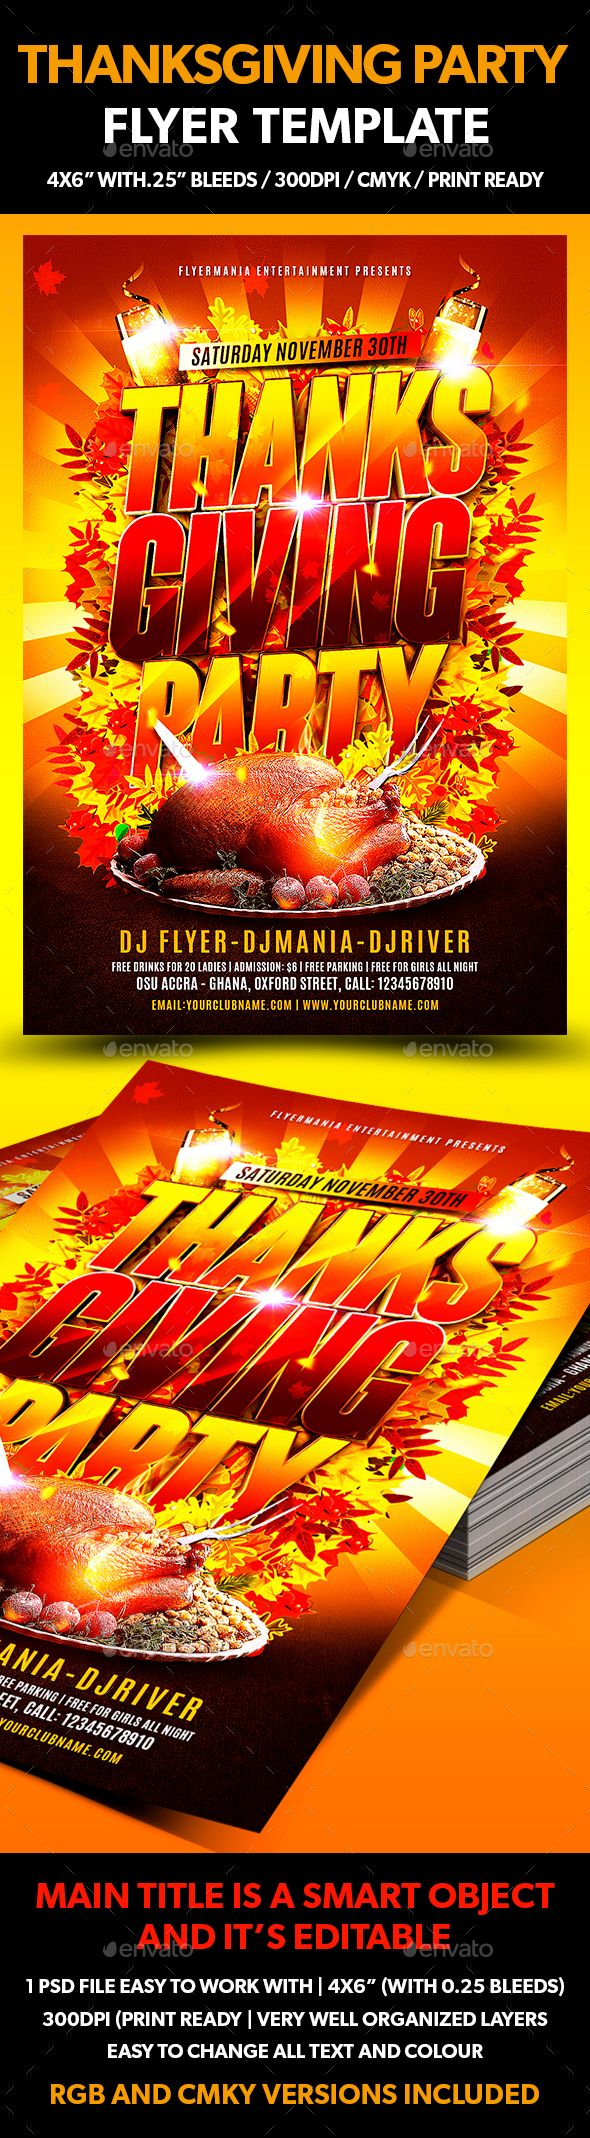 thanksgiving party flyer template thanksgiving parties party flyer and flyer template. Black Bedroom Furniture Sets. Home Design Ideas